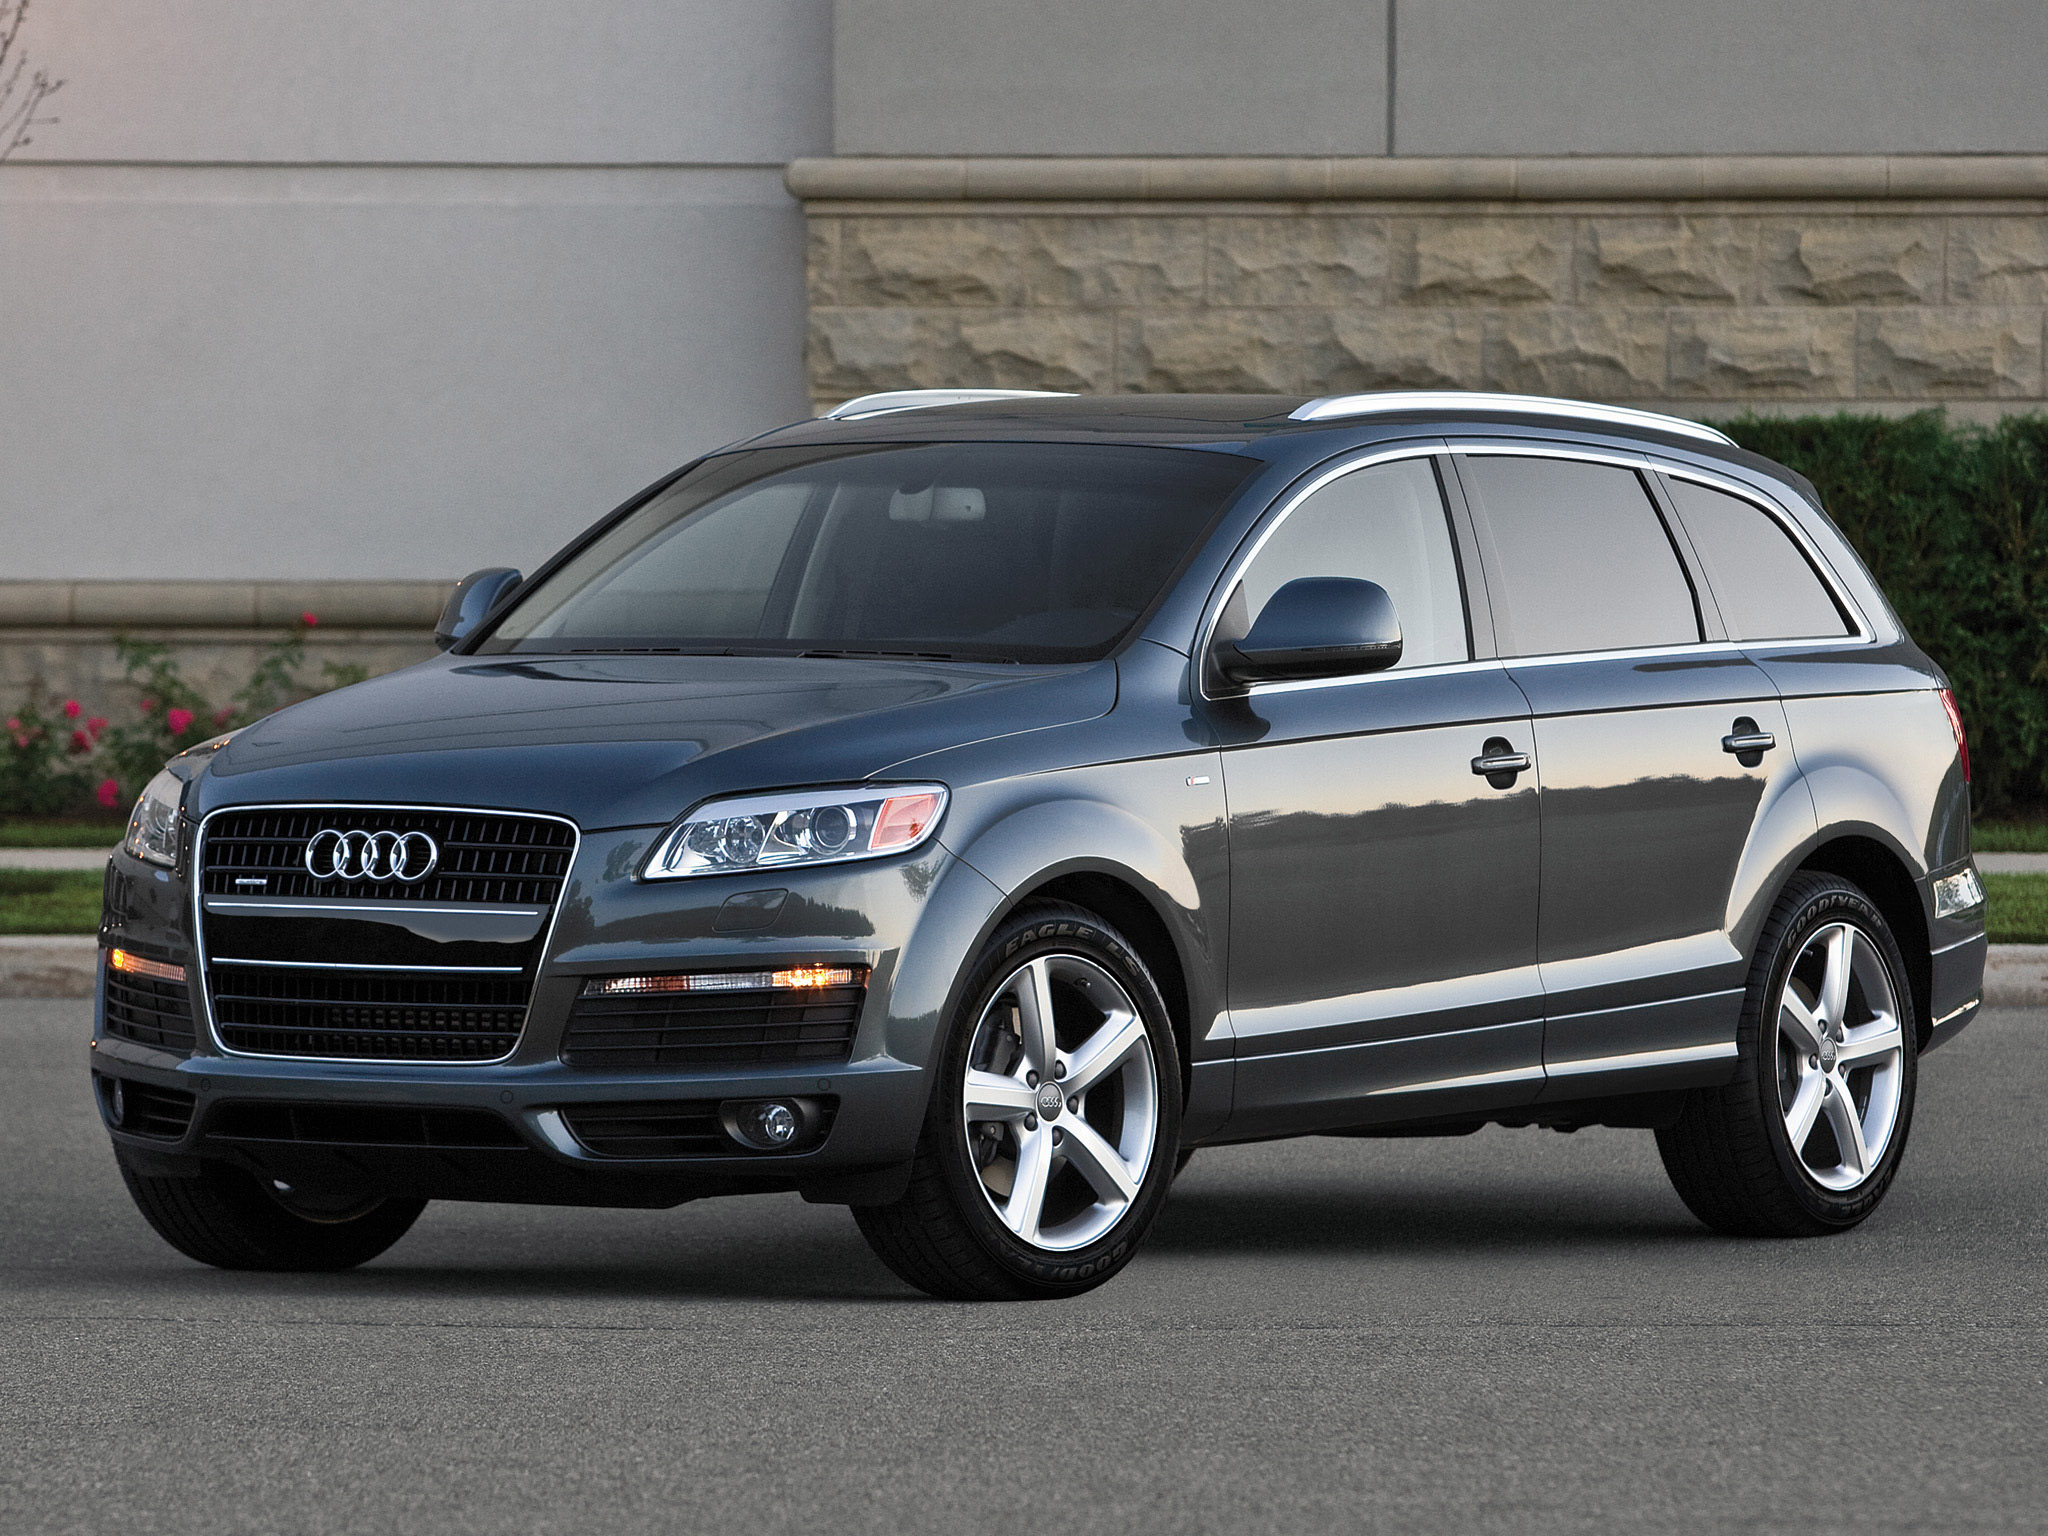 audi q7 s line usa 2008 audi q7 s line usa 2008 photo 01 car in pictures car photo gallery. Black Bedroom Furniture Sets. Home Design Ideas